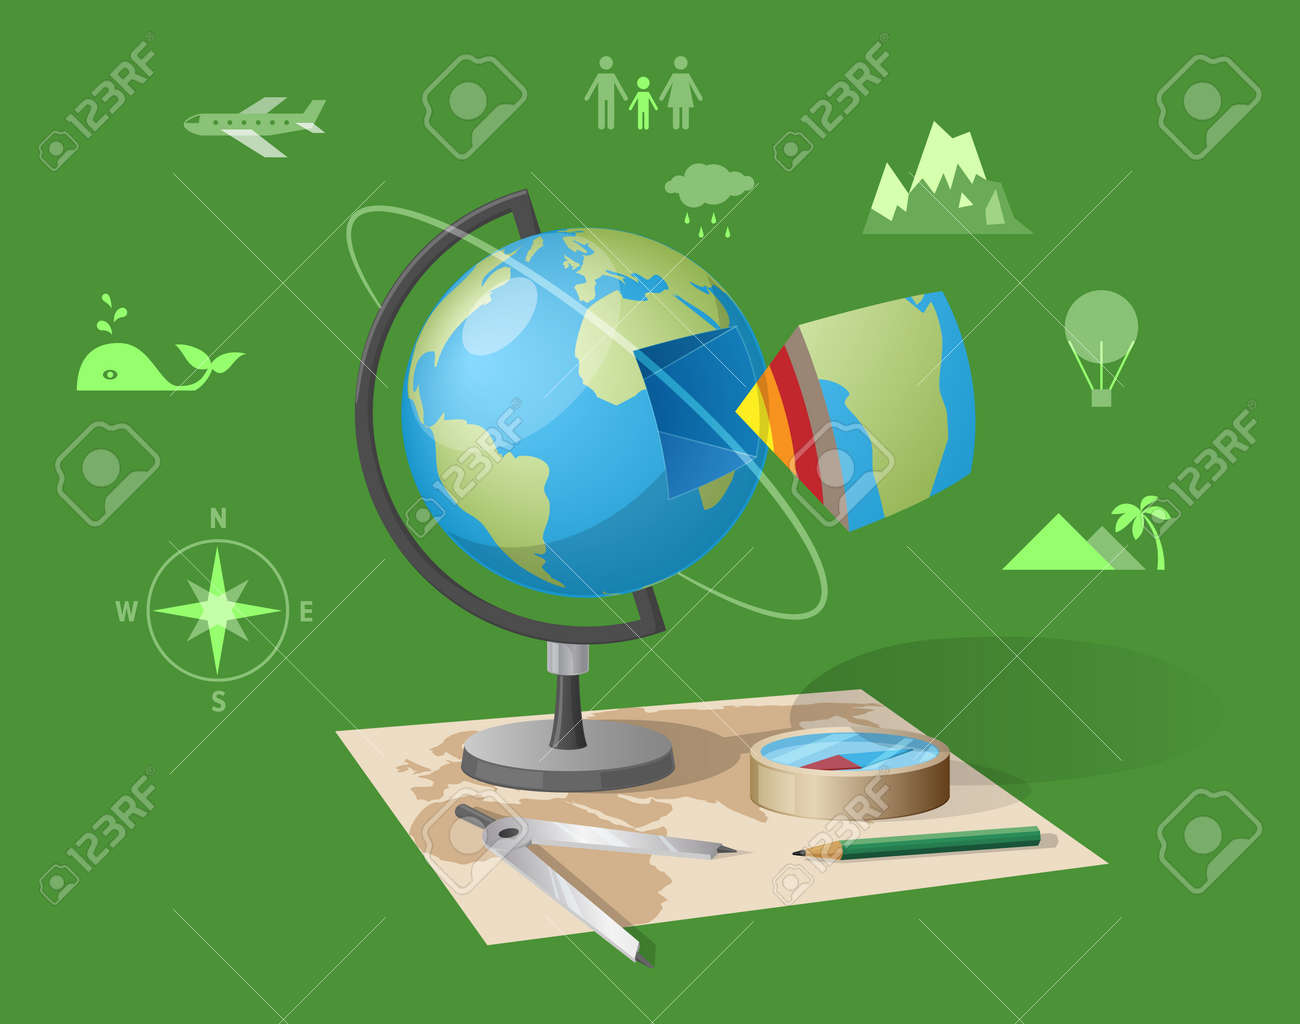 Geography class isolated vector illustration on green background geography class isolated vector illustration on green background cartoon style globe graphite pencil and gumiabroncs Choice Image